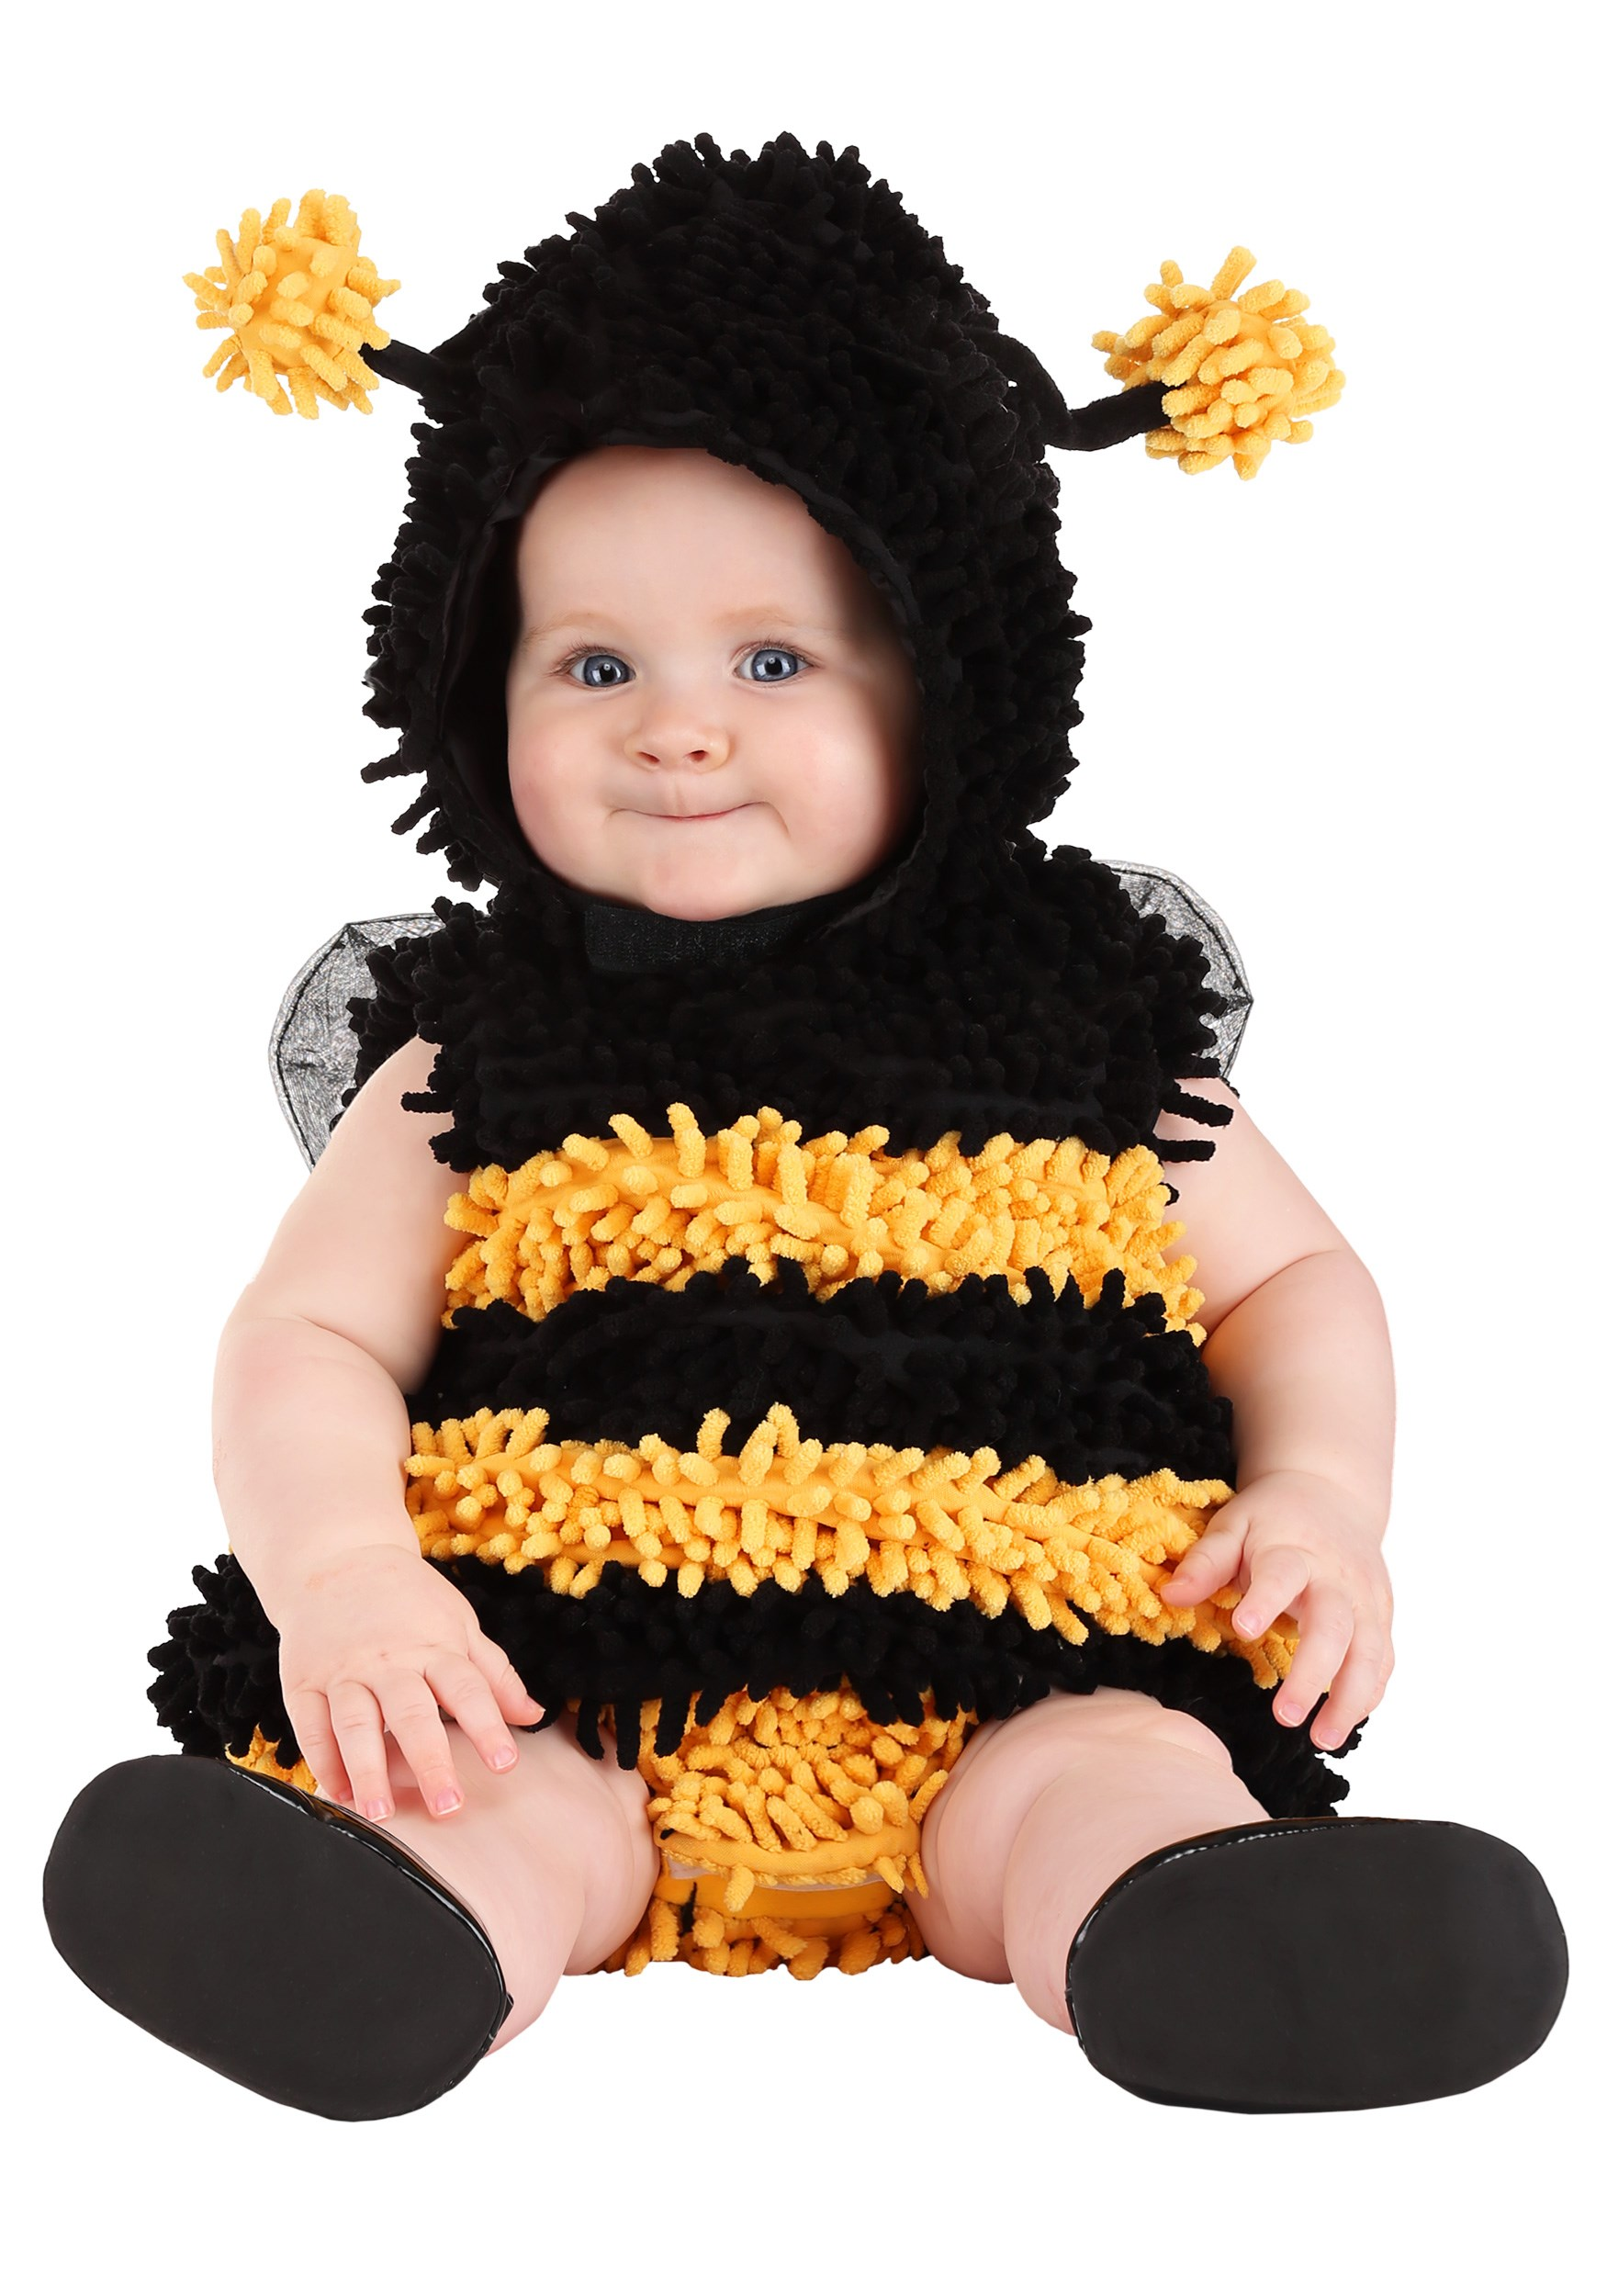 Bumble Bee Costumes & Honey Bee Costumes - HalloweenCostumes.com